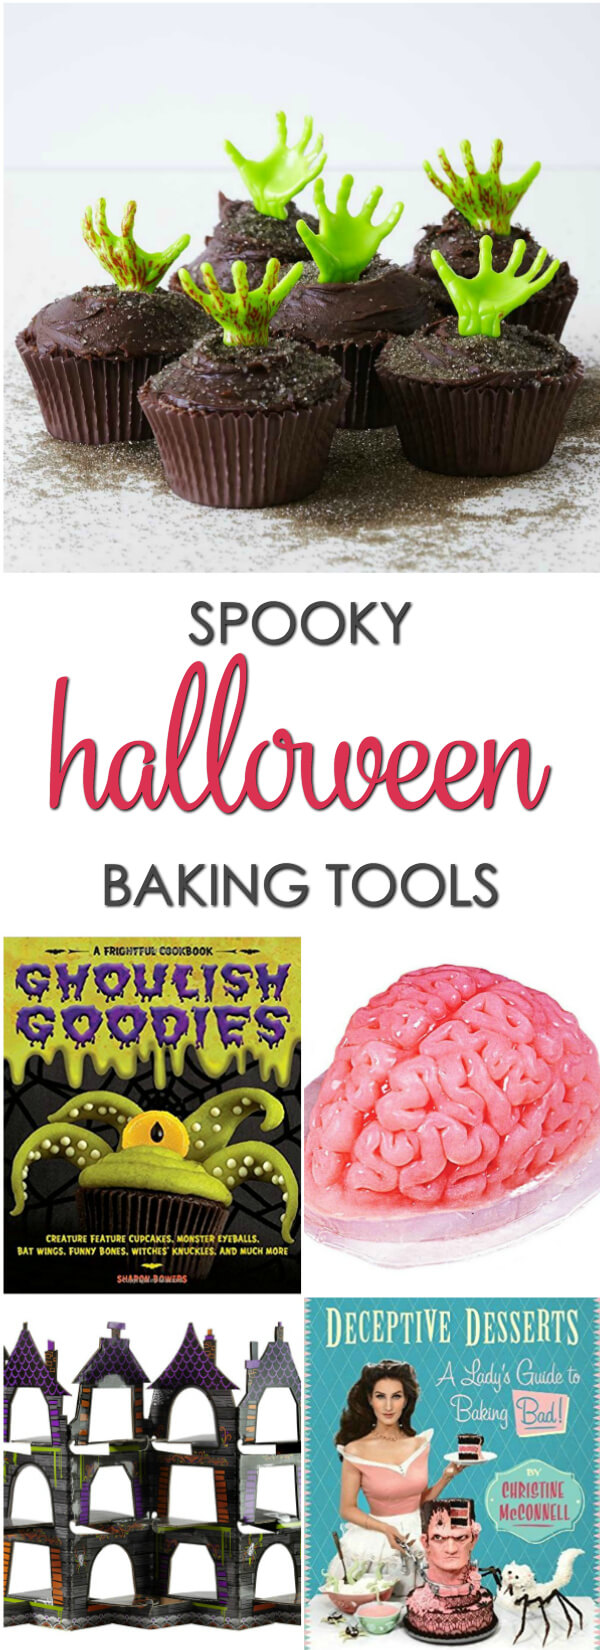 The spookiest Halloween baking accessories